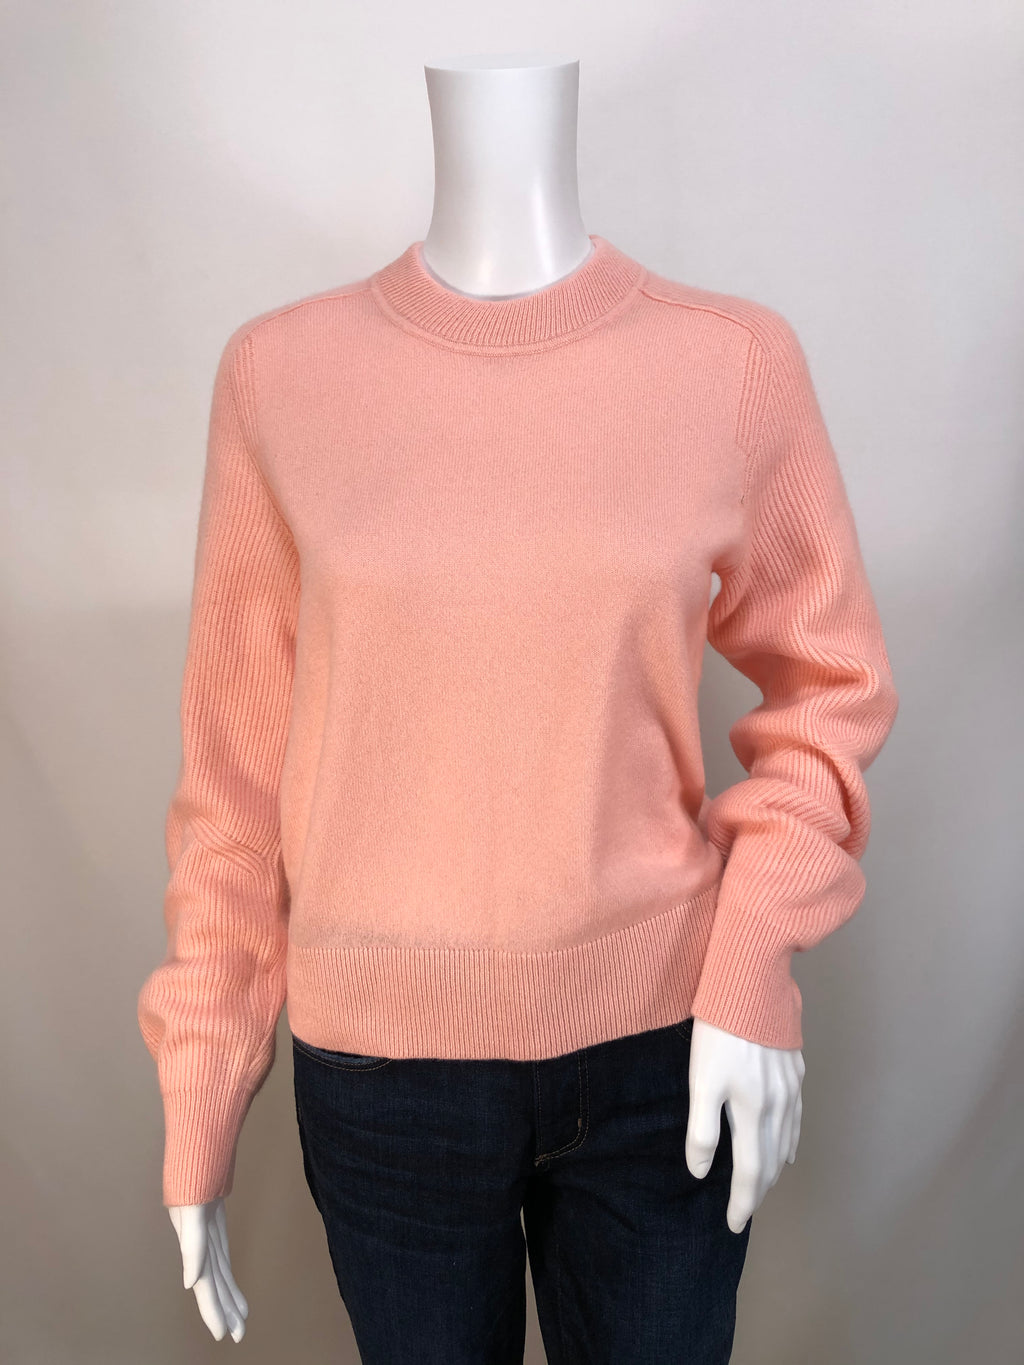 Rag and Bone Pink Rose Logan Cashmere Crew Sweater size S